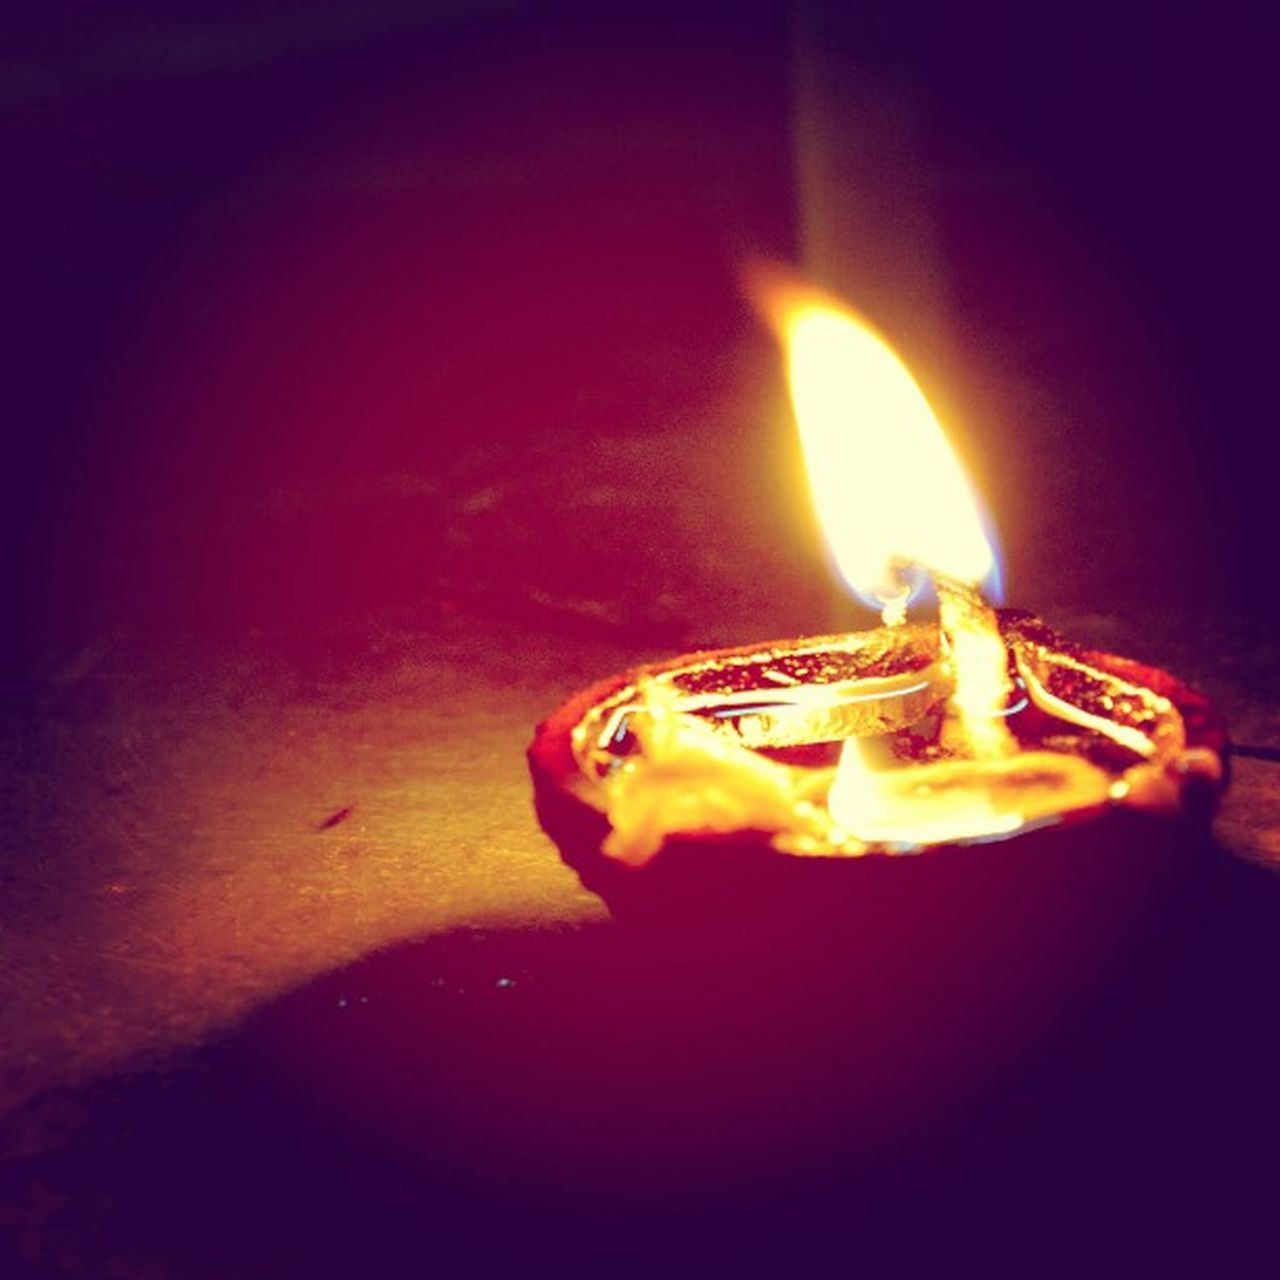 Light Diya Deep Roshni Lamp Lights Insta Hope Faith